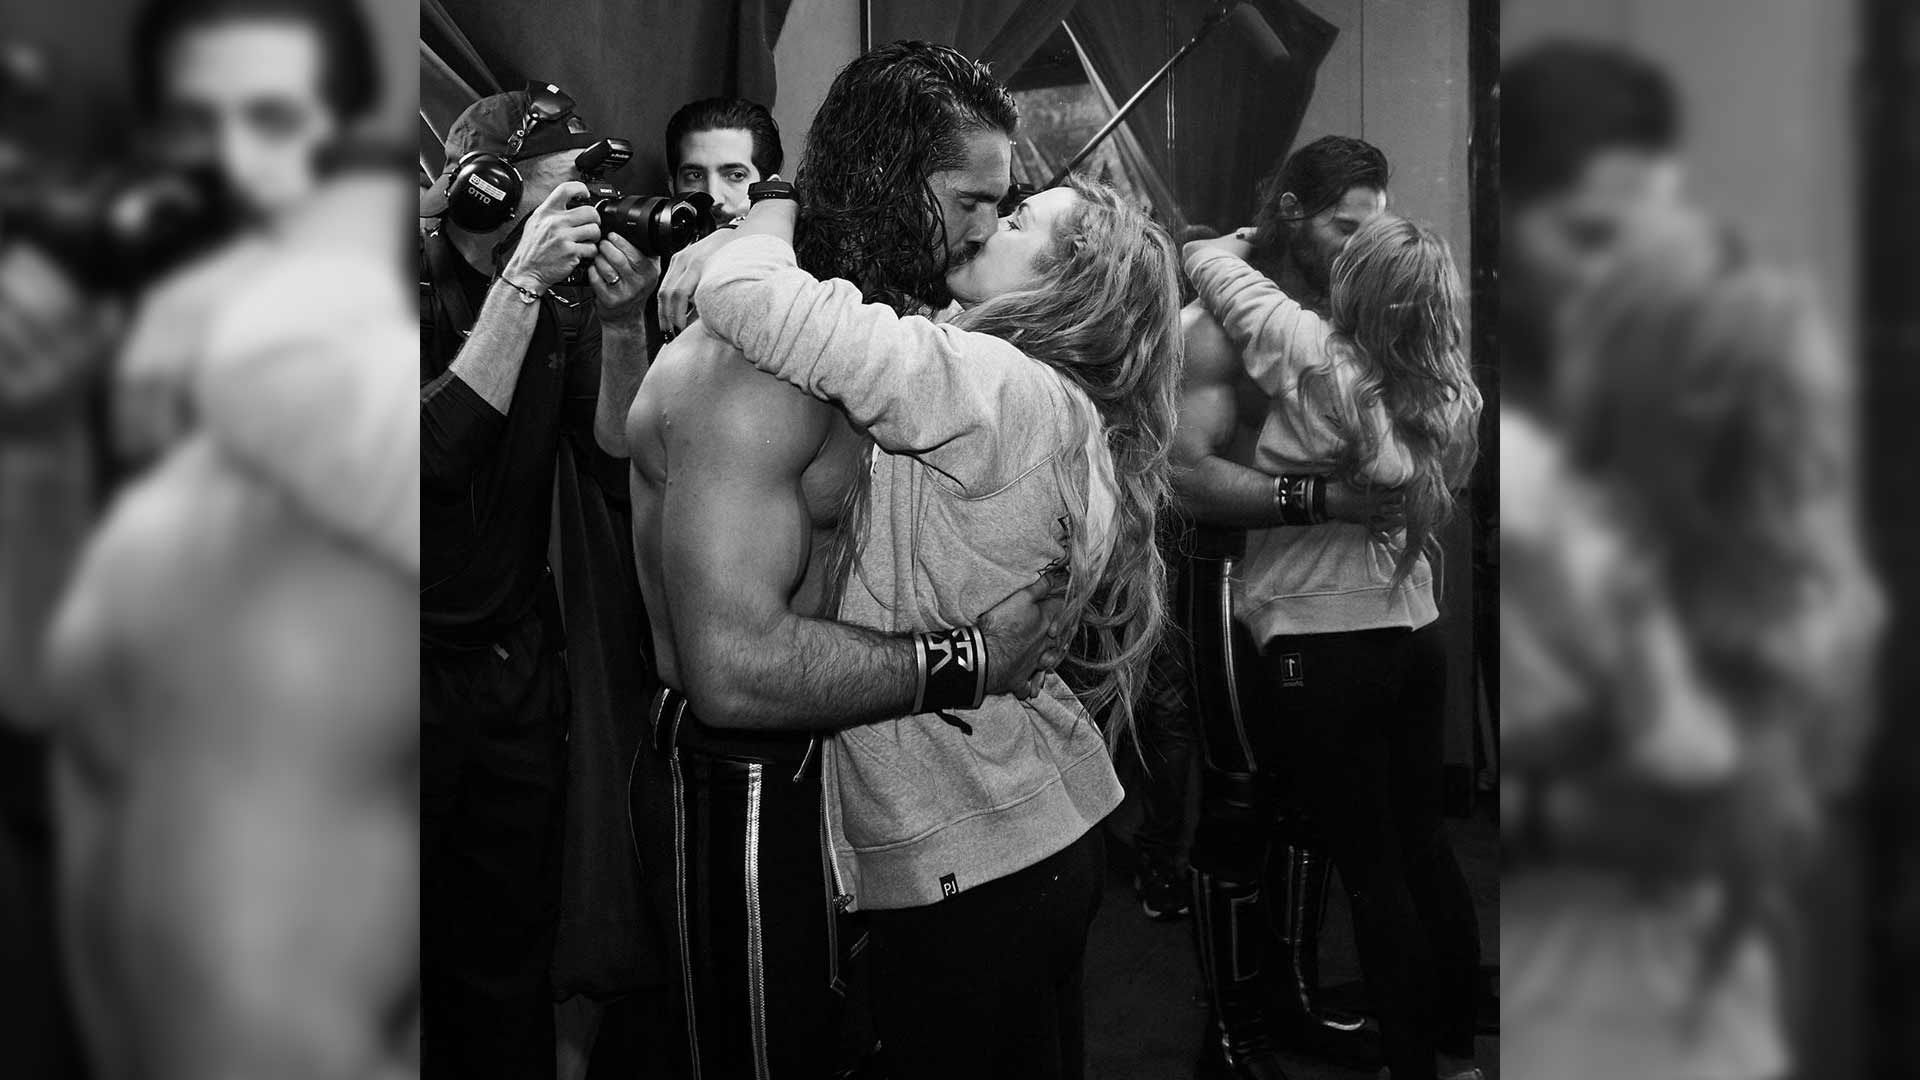 WWE Stars Seth Rollins and Becky Lynch Confirm Theyre a Couple 1920x1080